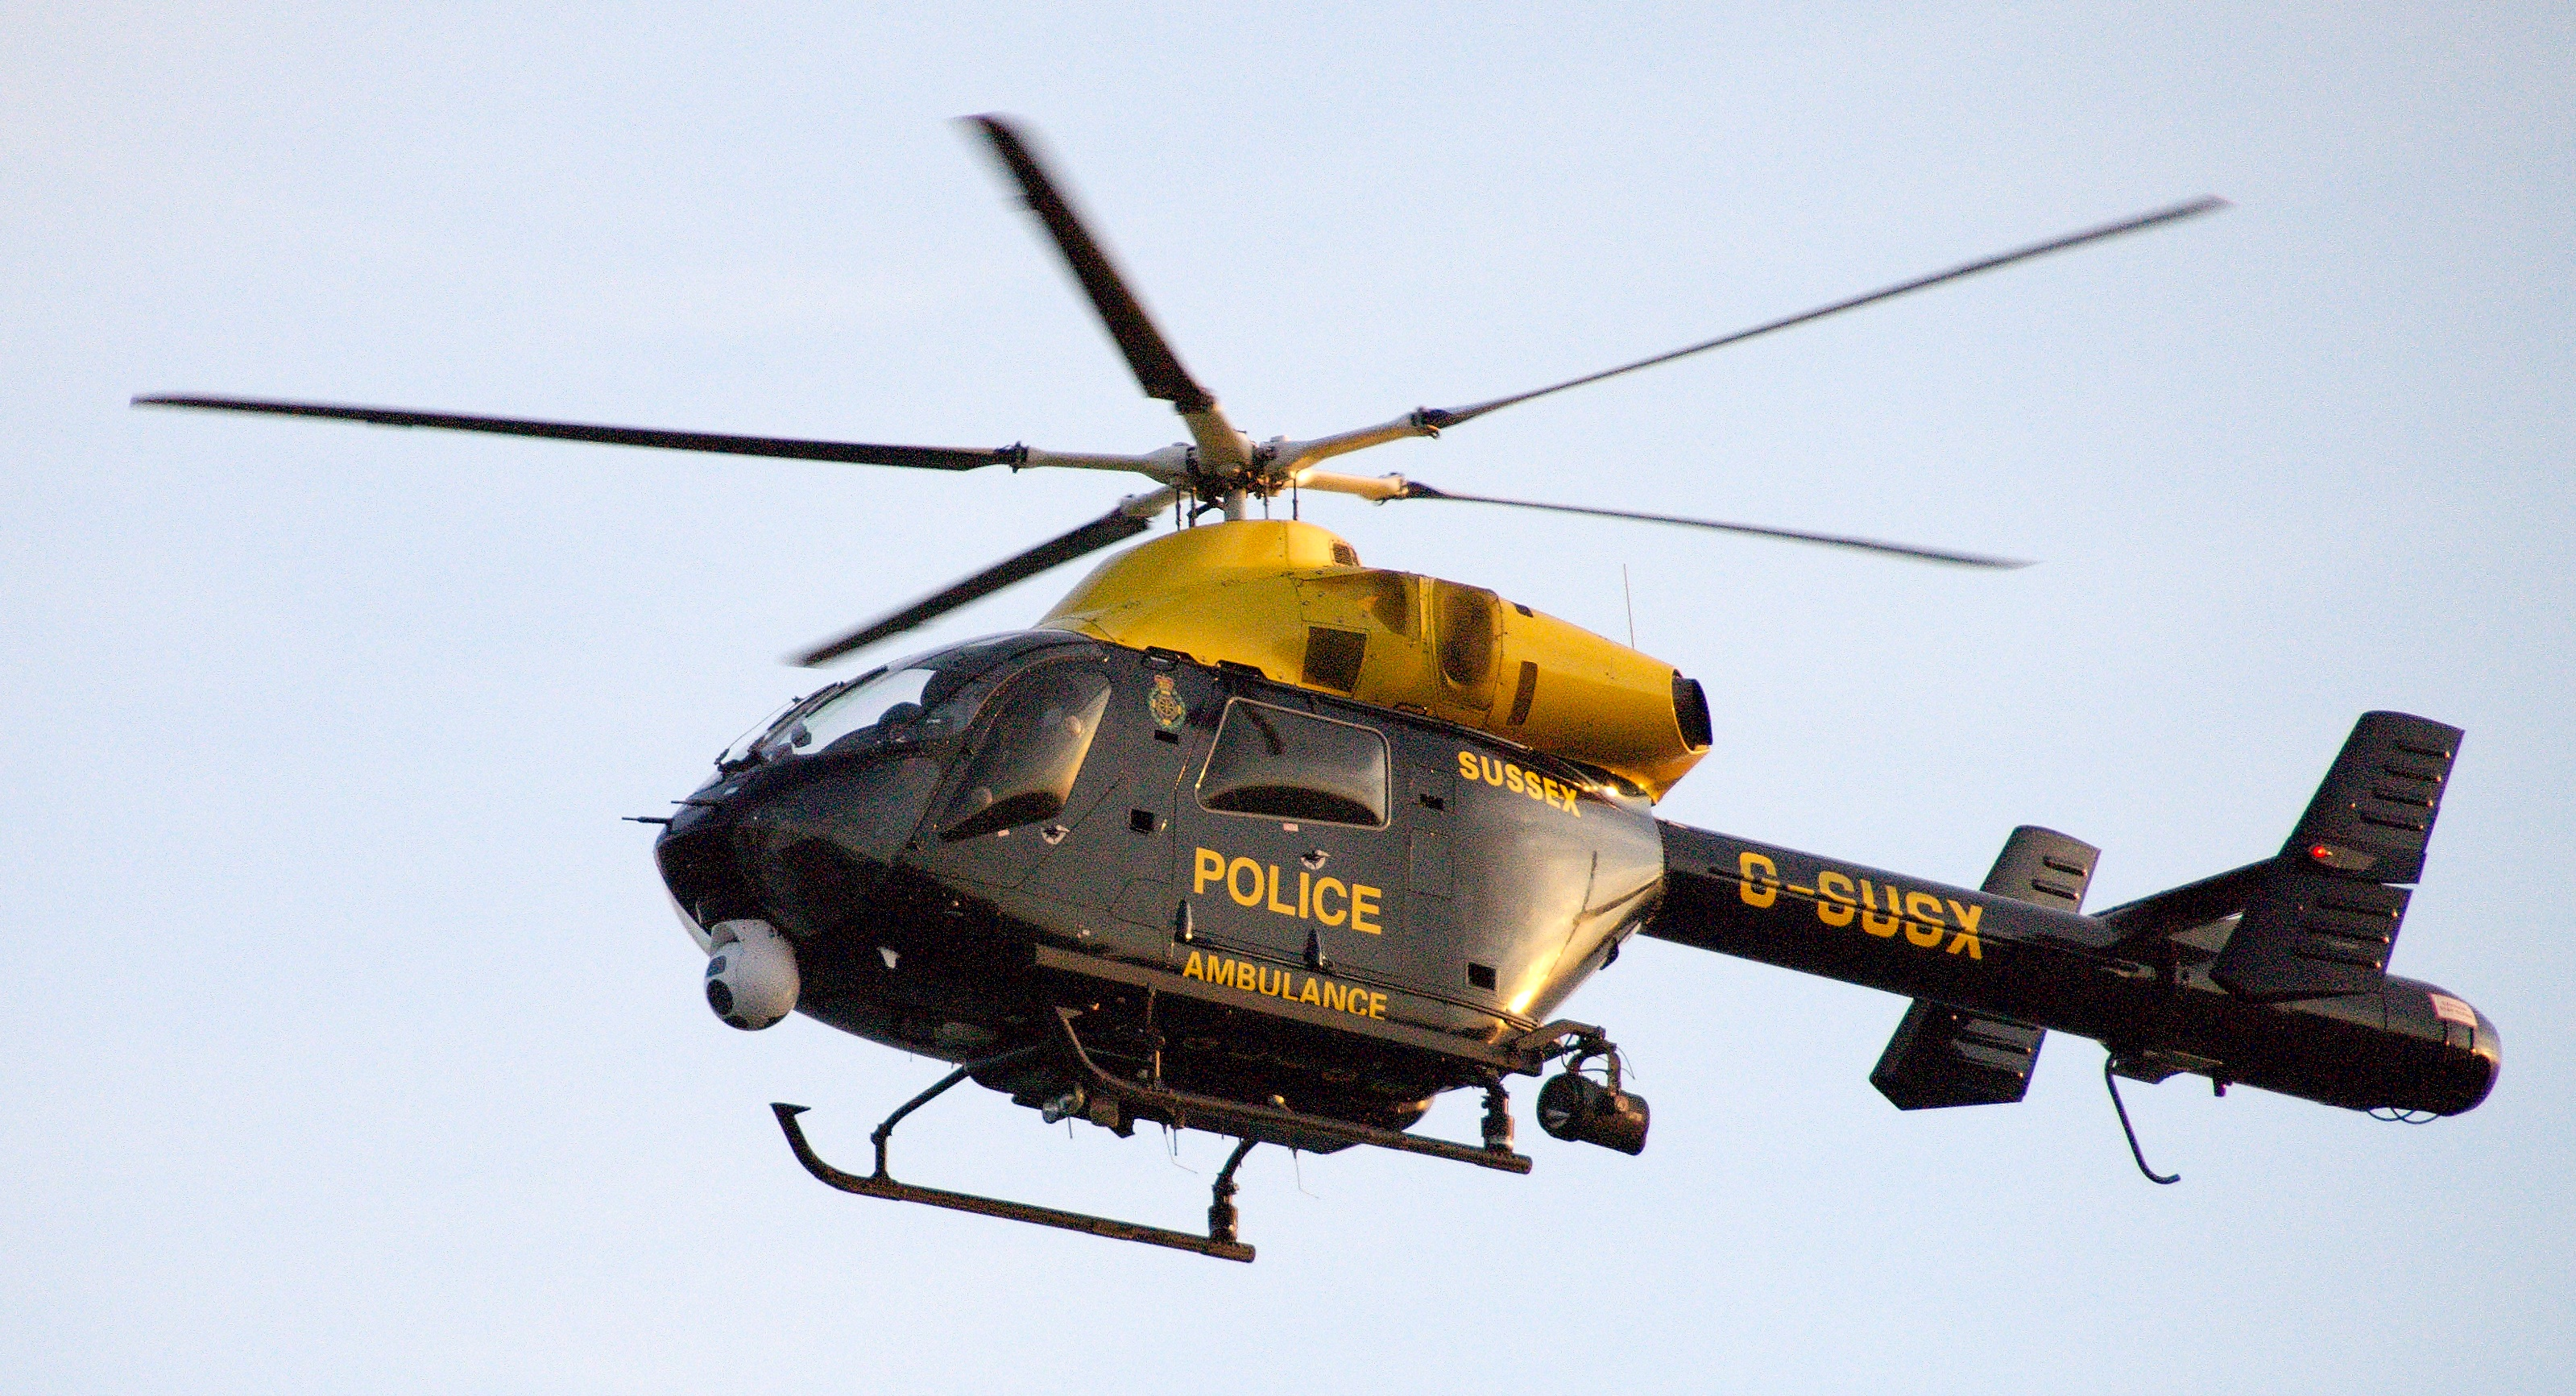 heli chopper with File Sussex Police Helicopter on Lake Lovely Water Trail B C further This Giant New Helicopter Is Like A Greyhound Bus For The Sky likewise Uh 1 Huey 1112670 likewise Pakistan Army Helicopters besides Helicopter Rotor Blades 722440.